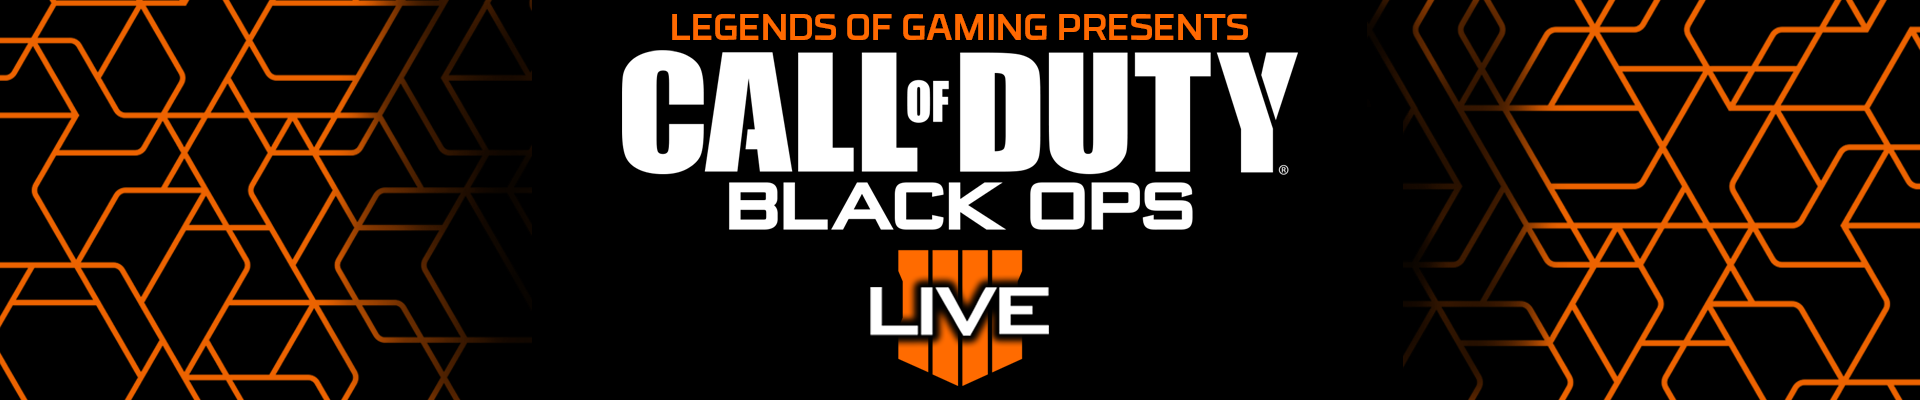 Legends of Gaming presents: Black Ops 4 LIVE